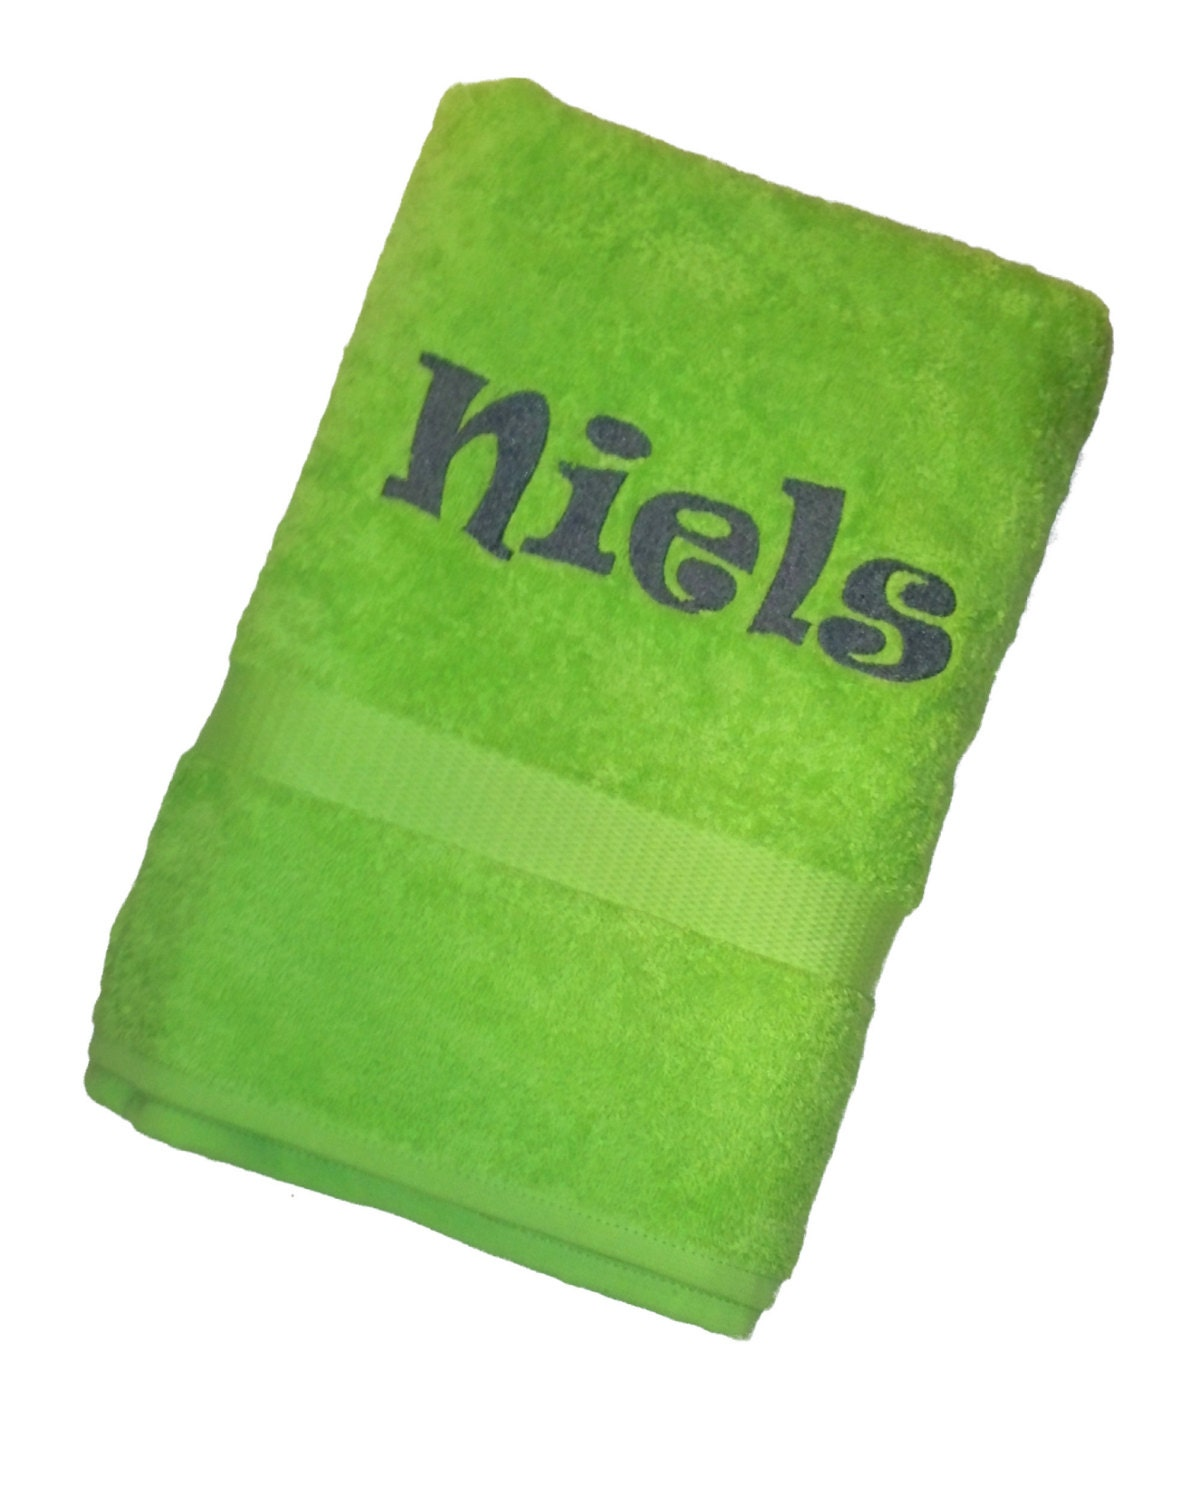 Personalised Embroidered Towel Bathtowel Name Embroidery